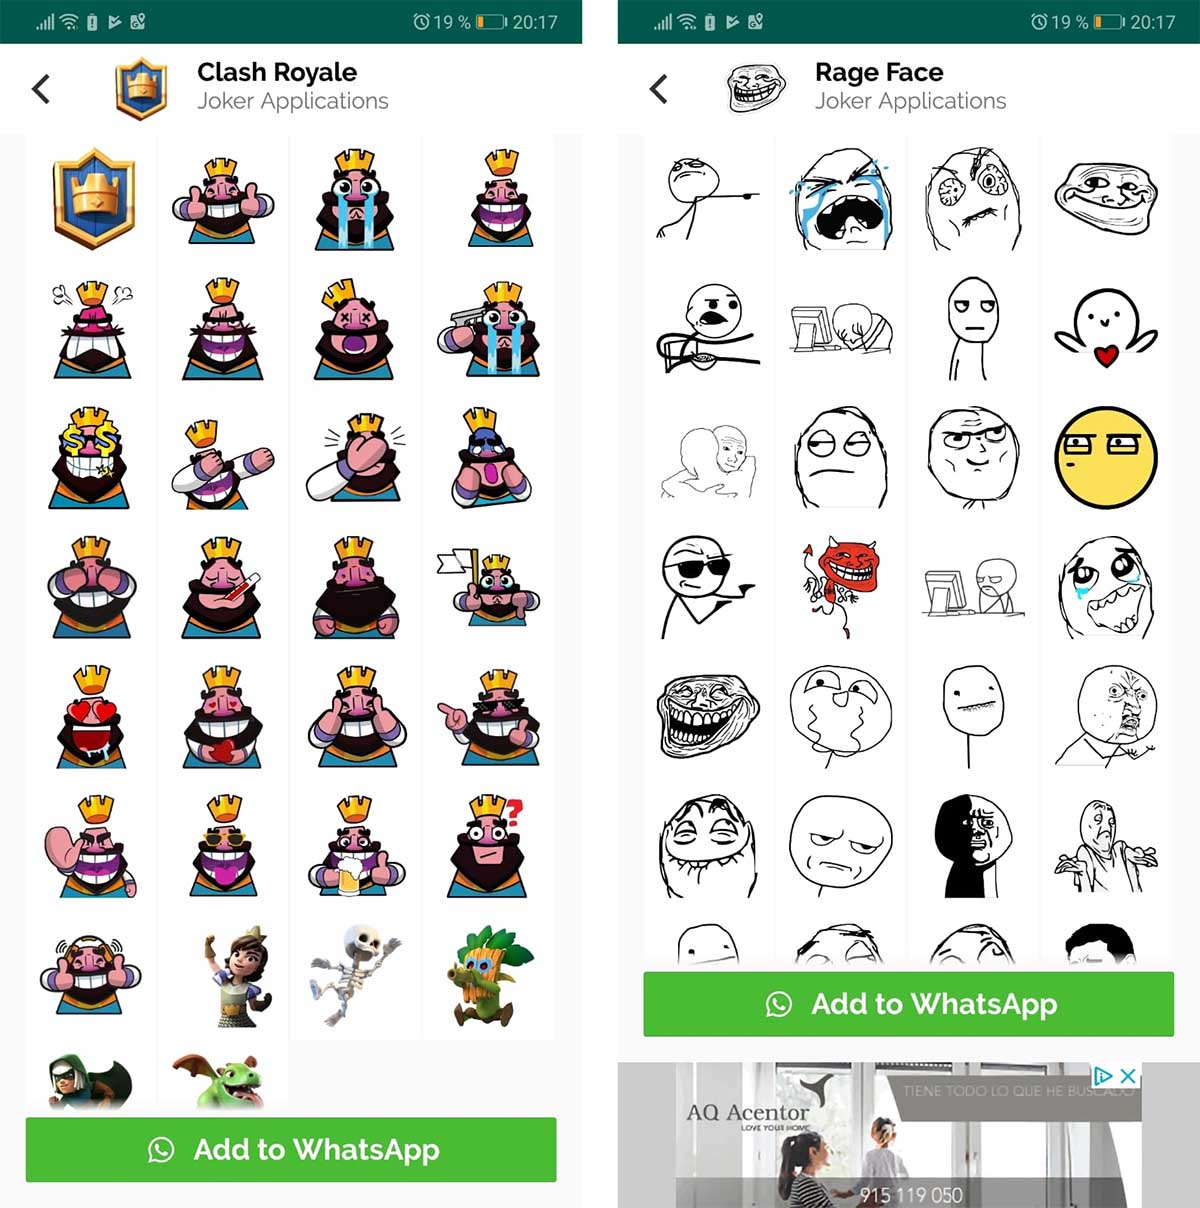 stickers para whatsapp de Clash Royale